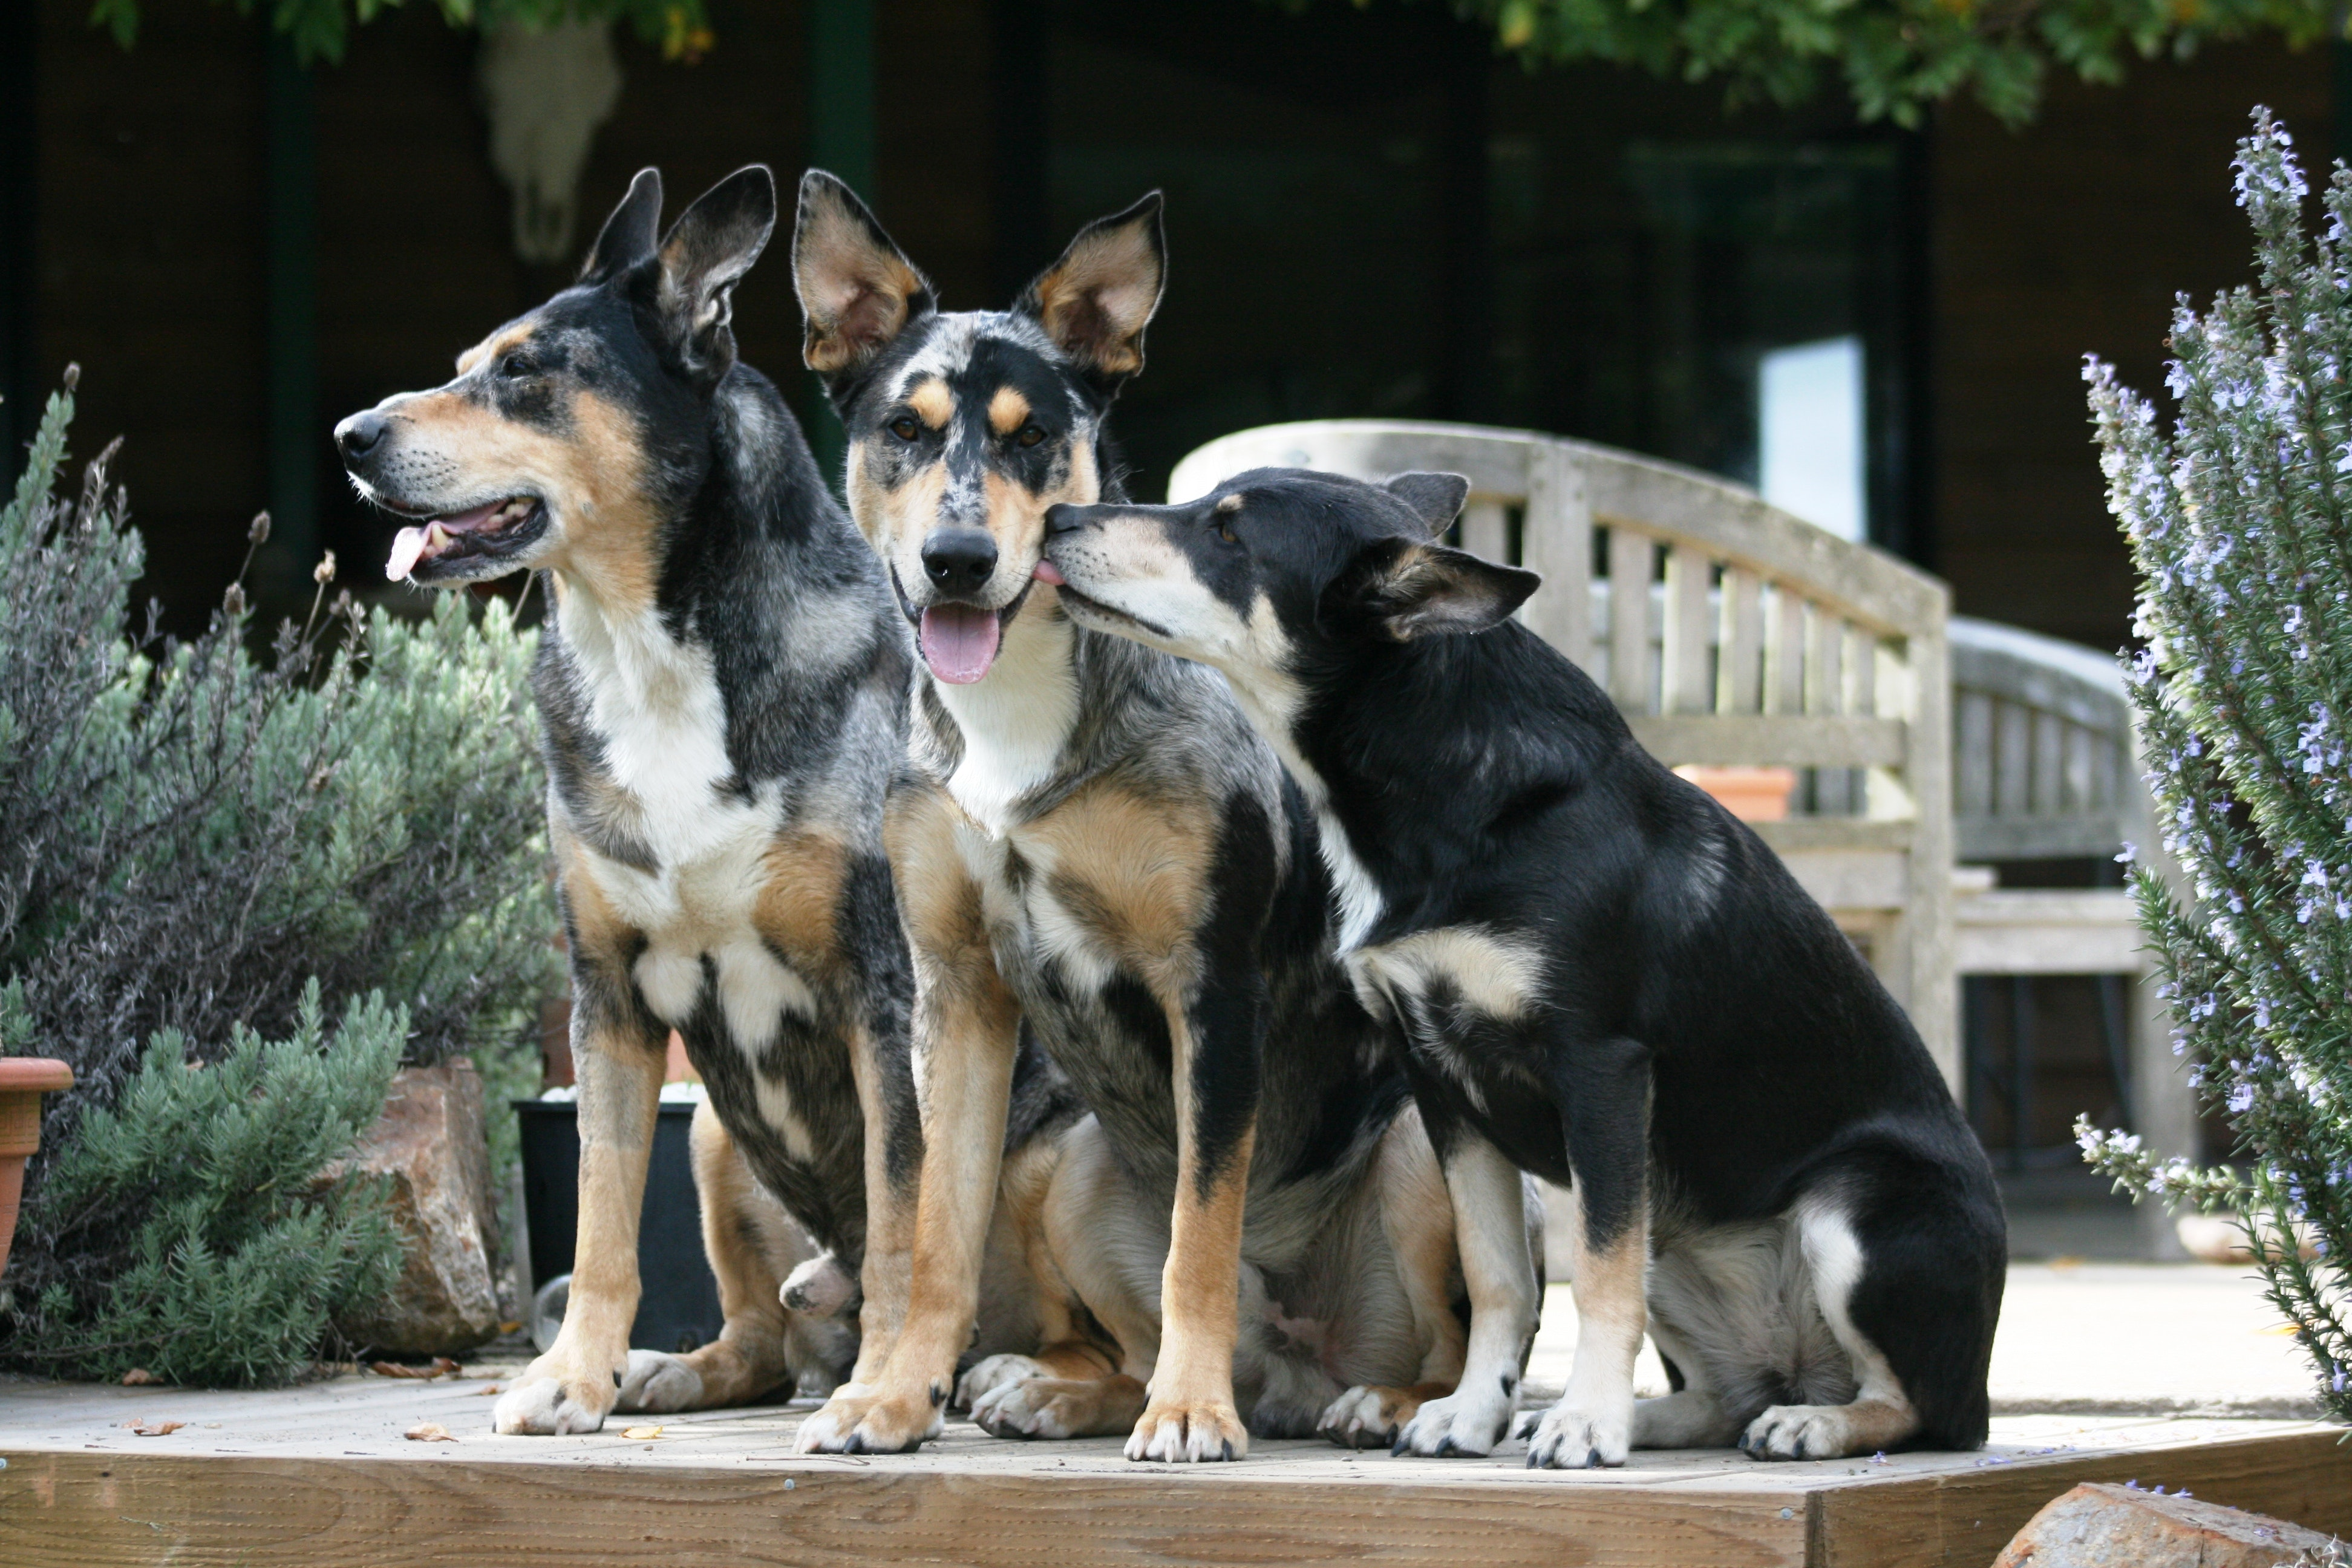 Picture of three dogs sitting together